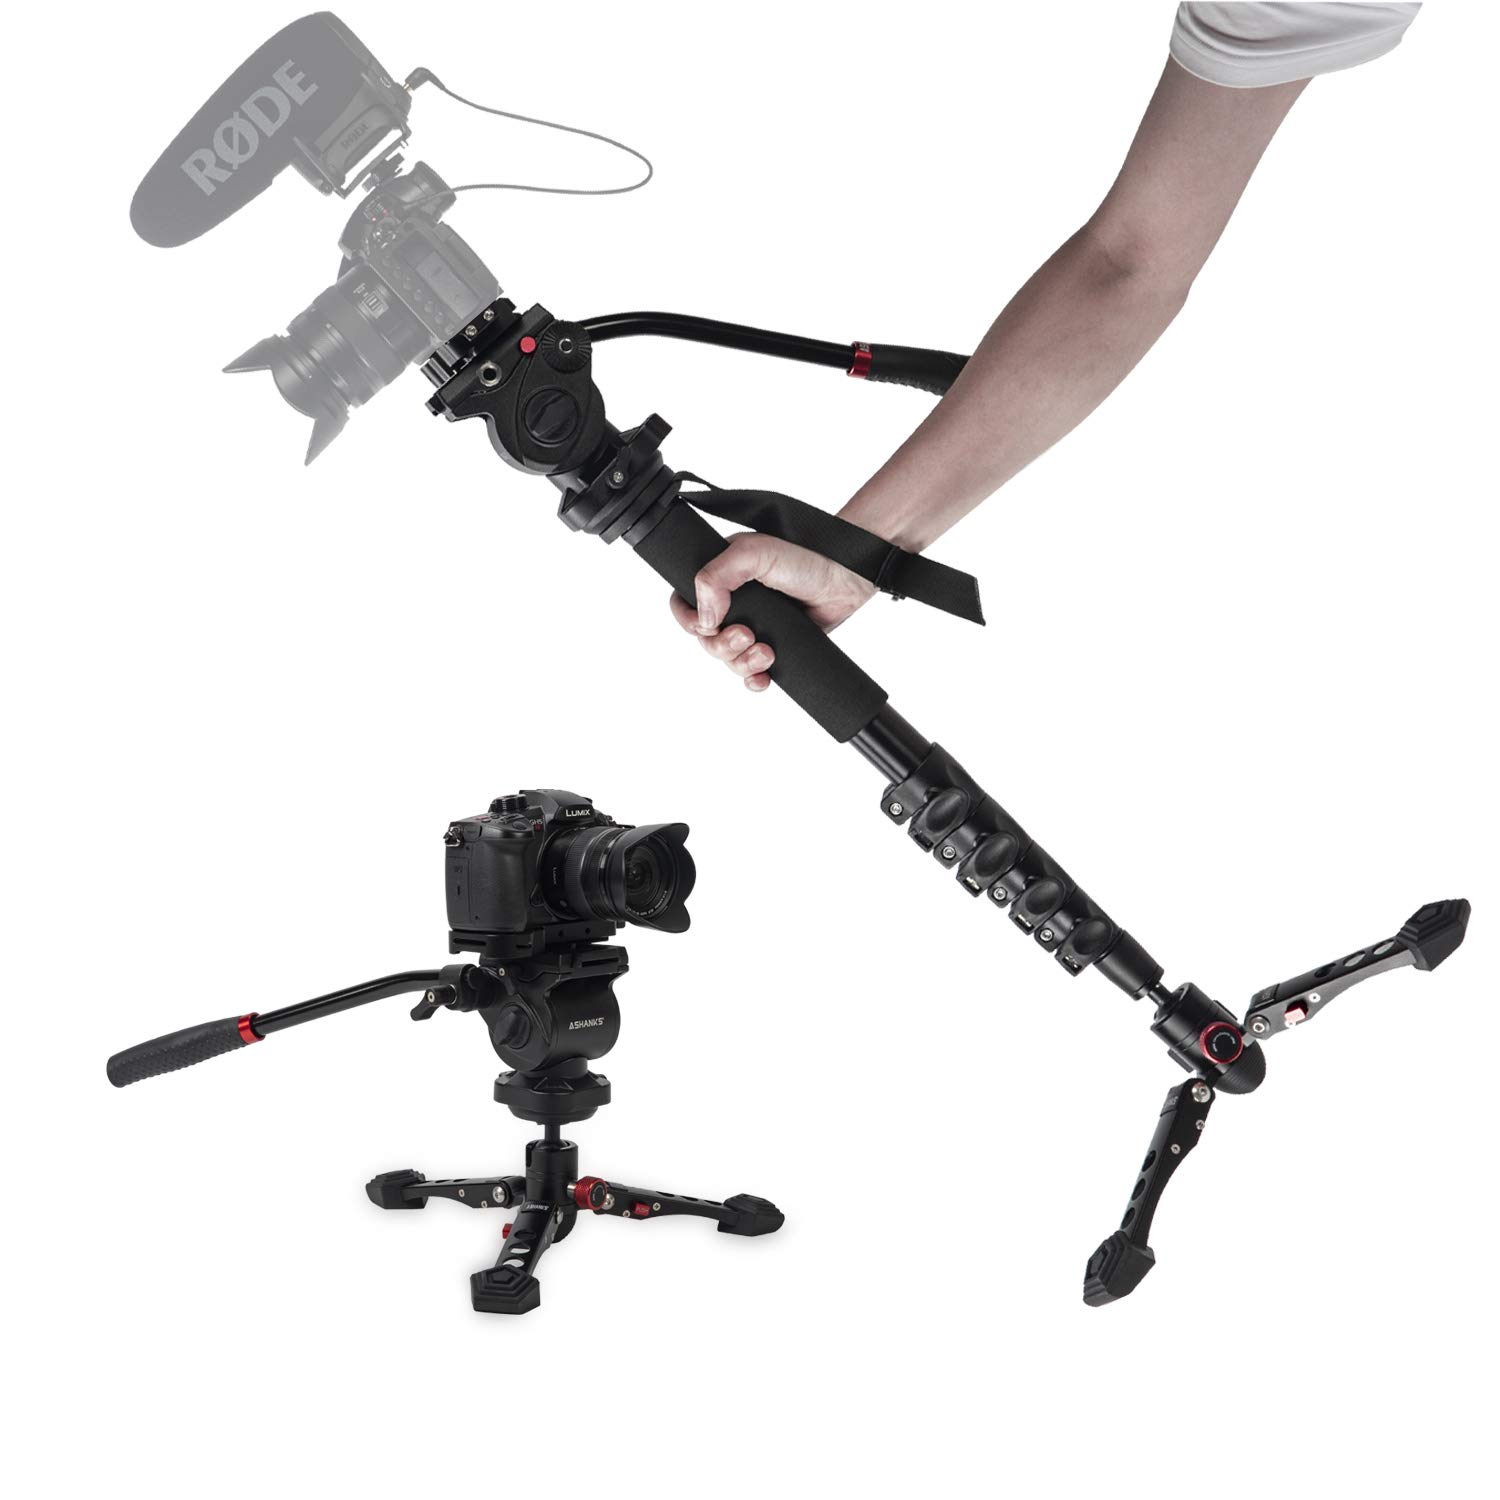 Camera Monopod, ASHANKS 65'' Professional Telescopic Video Monopod with Tripod Base and 360 Degree Panoramic Fluid Head, QR Plate Max Load 11lbs for DSLR Camera Camcorders by ASHANKS